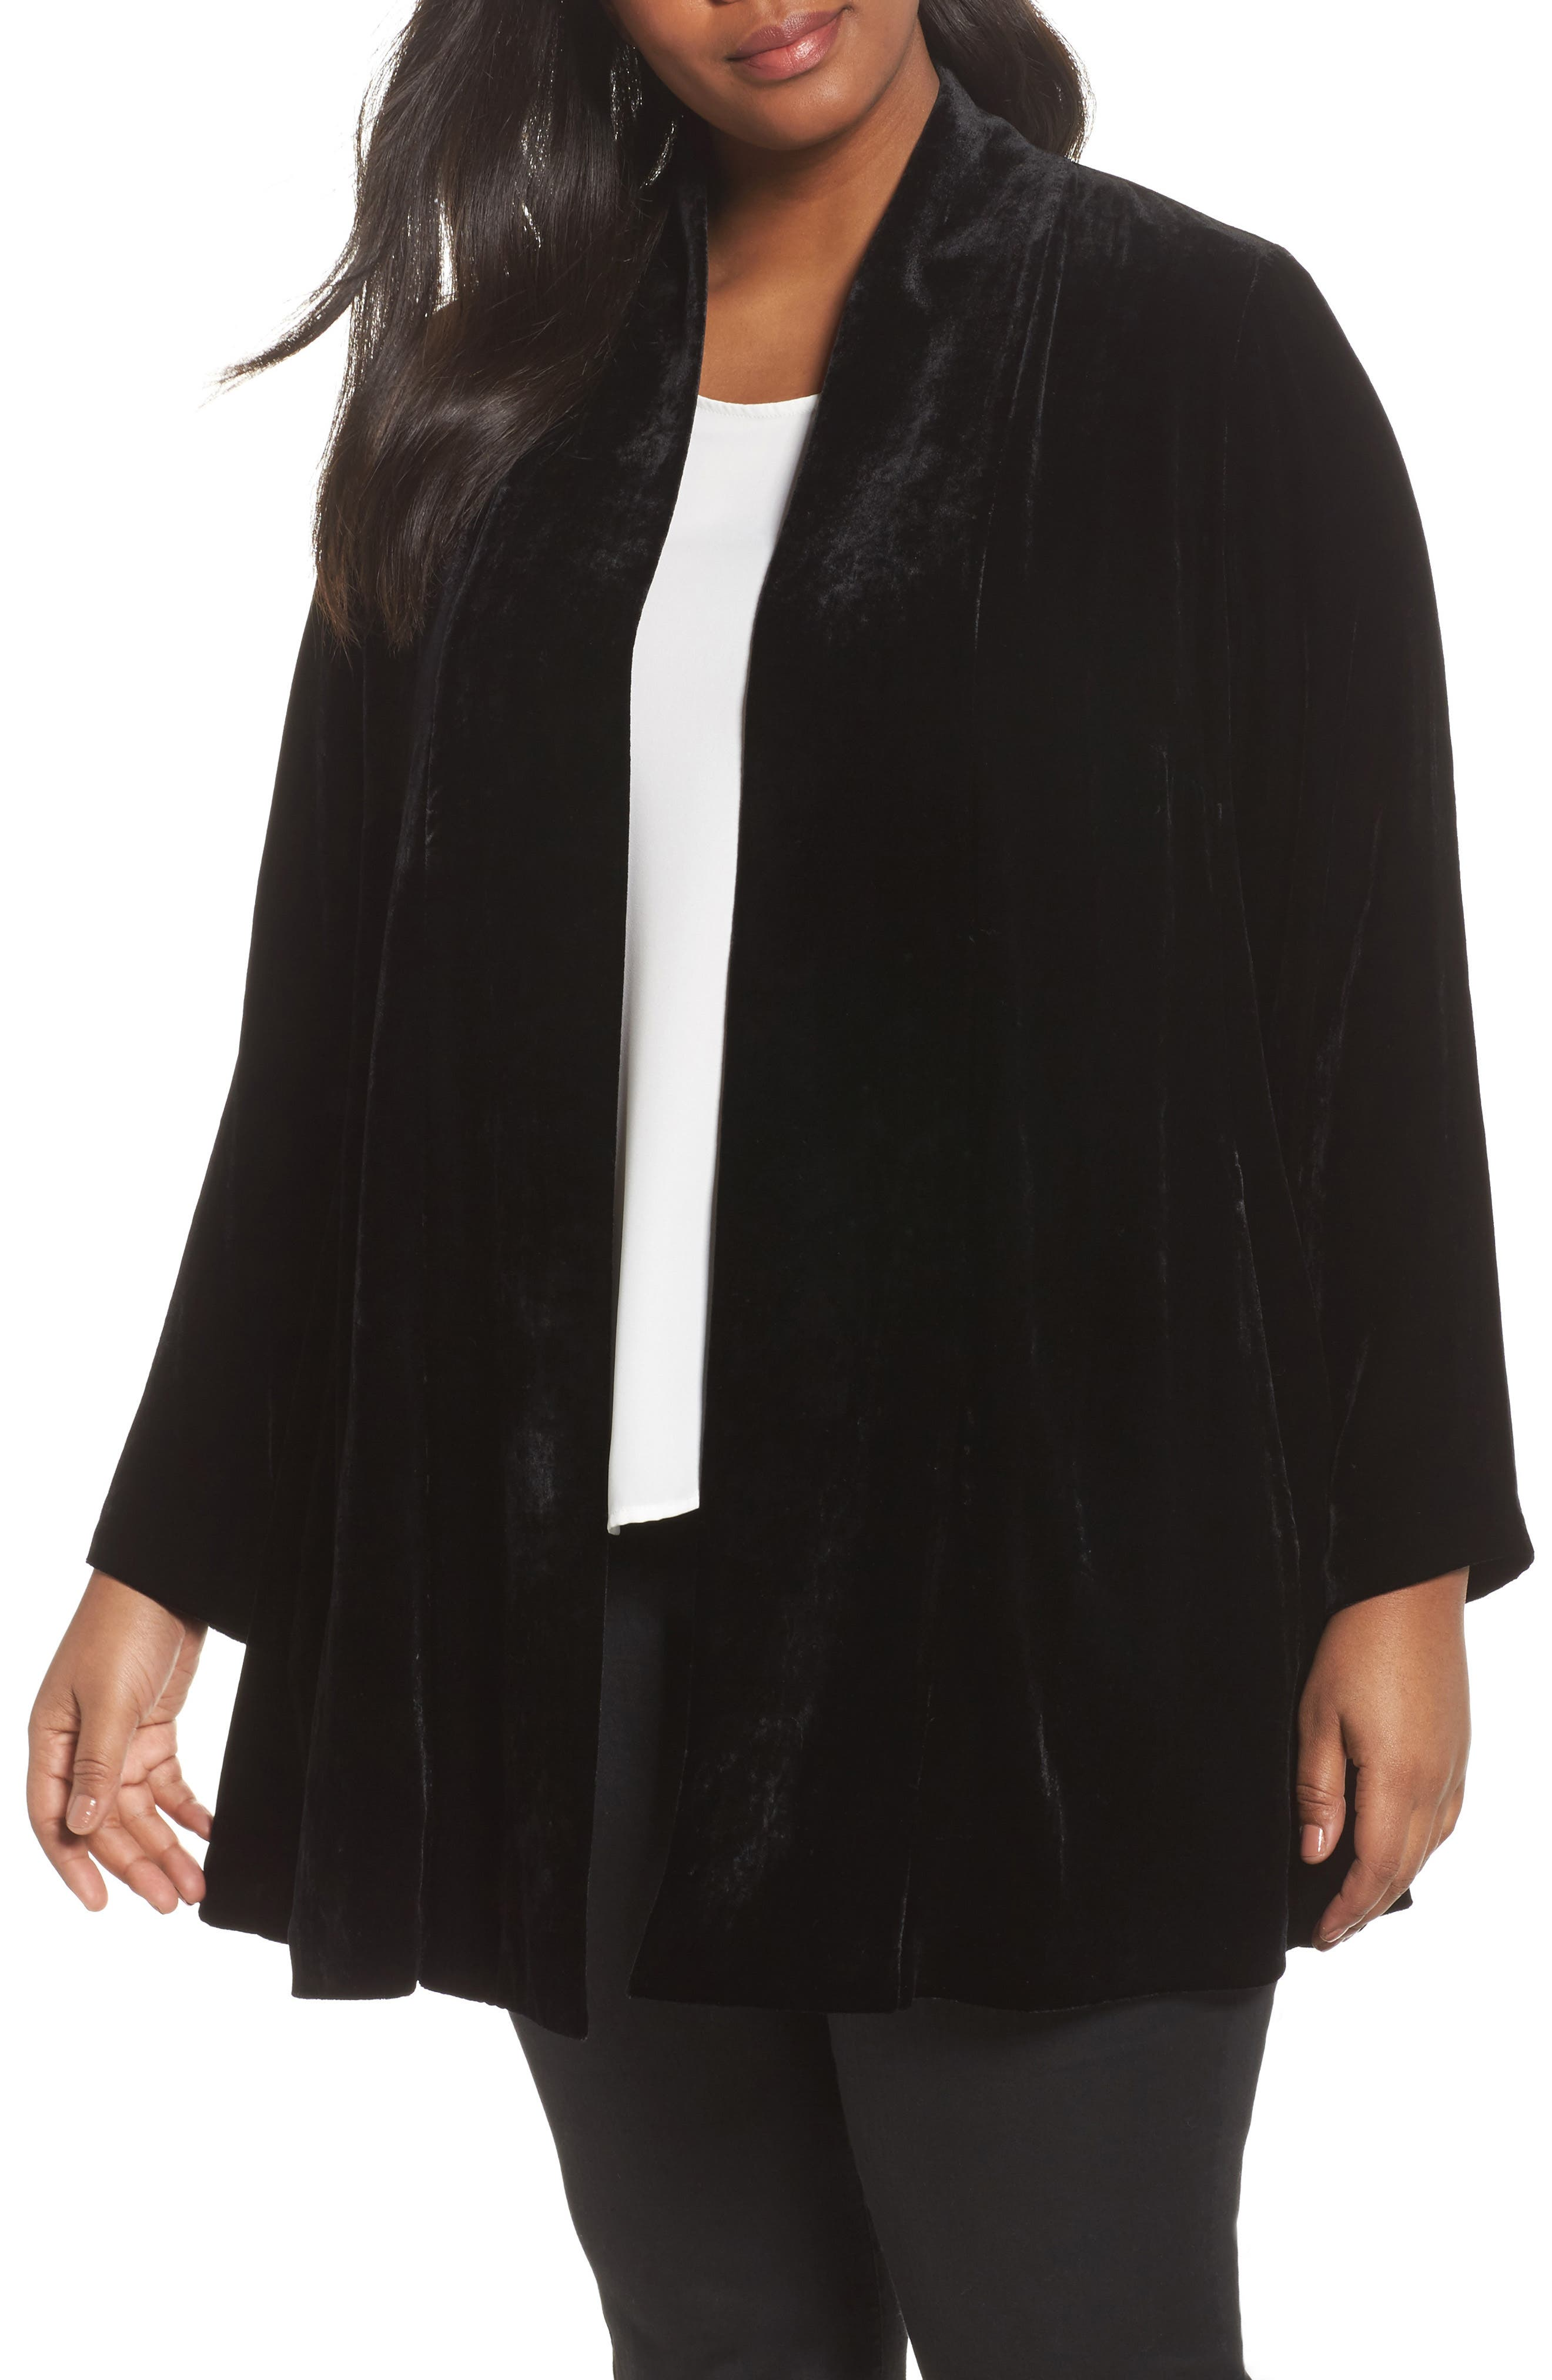 Alternate Image 1 Selected - Eileen Fisher Shawl Collar Velvet Jacket (Plus Size)